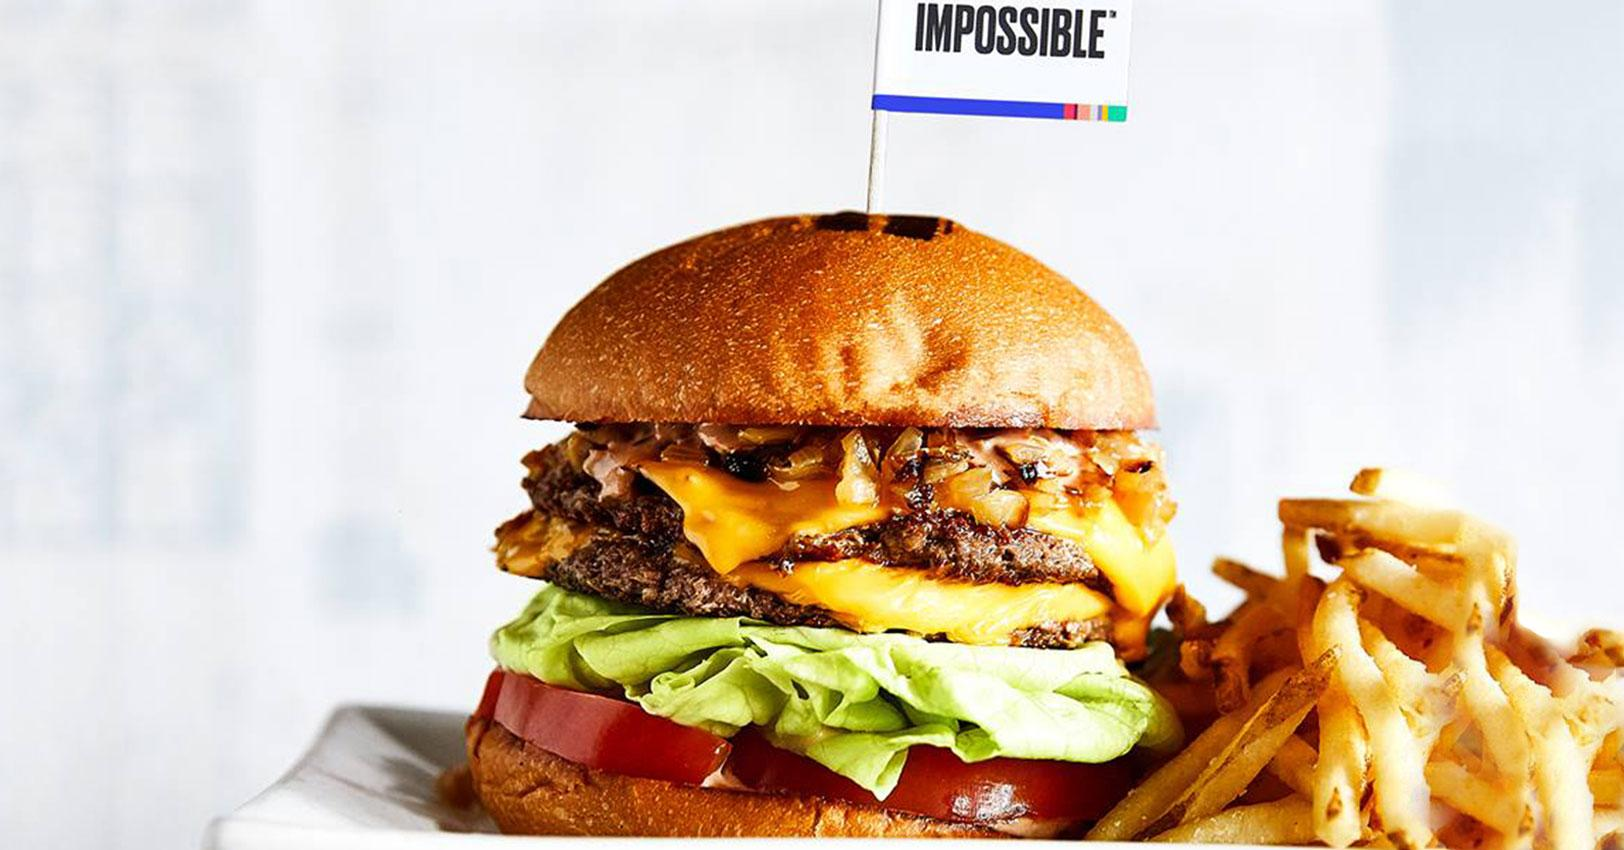 impossibleburger-1500388947607.jpg